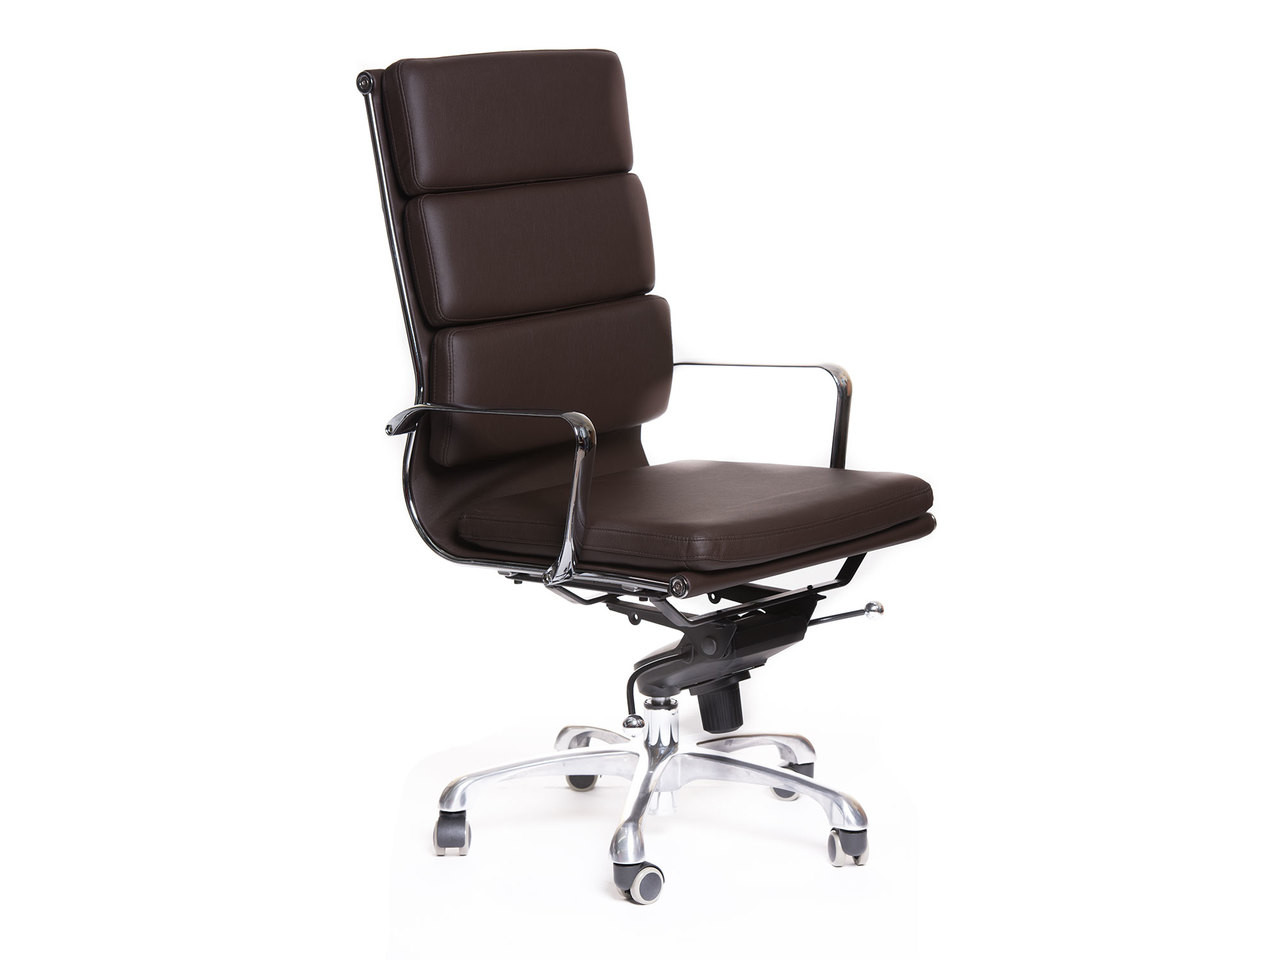 Excellent Ofw Bari Hb Executive Chair Espresso Office Furniture Pabps2019 Chair Design Images Pabps2019Com